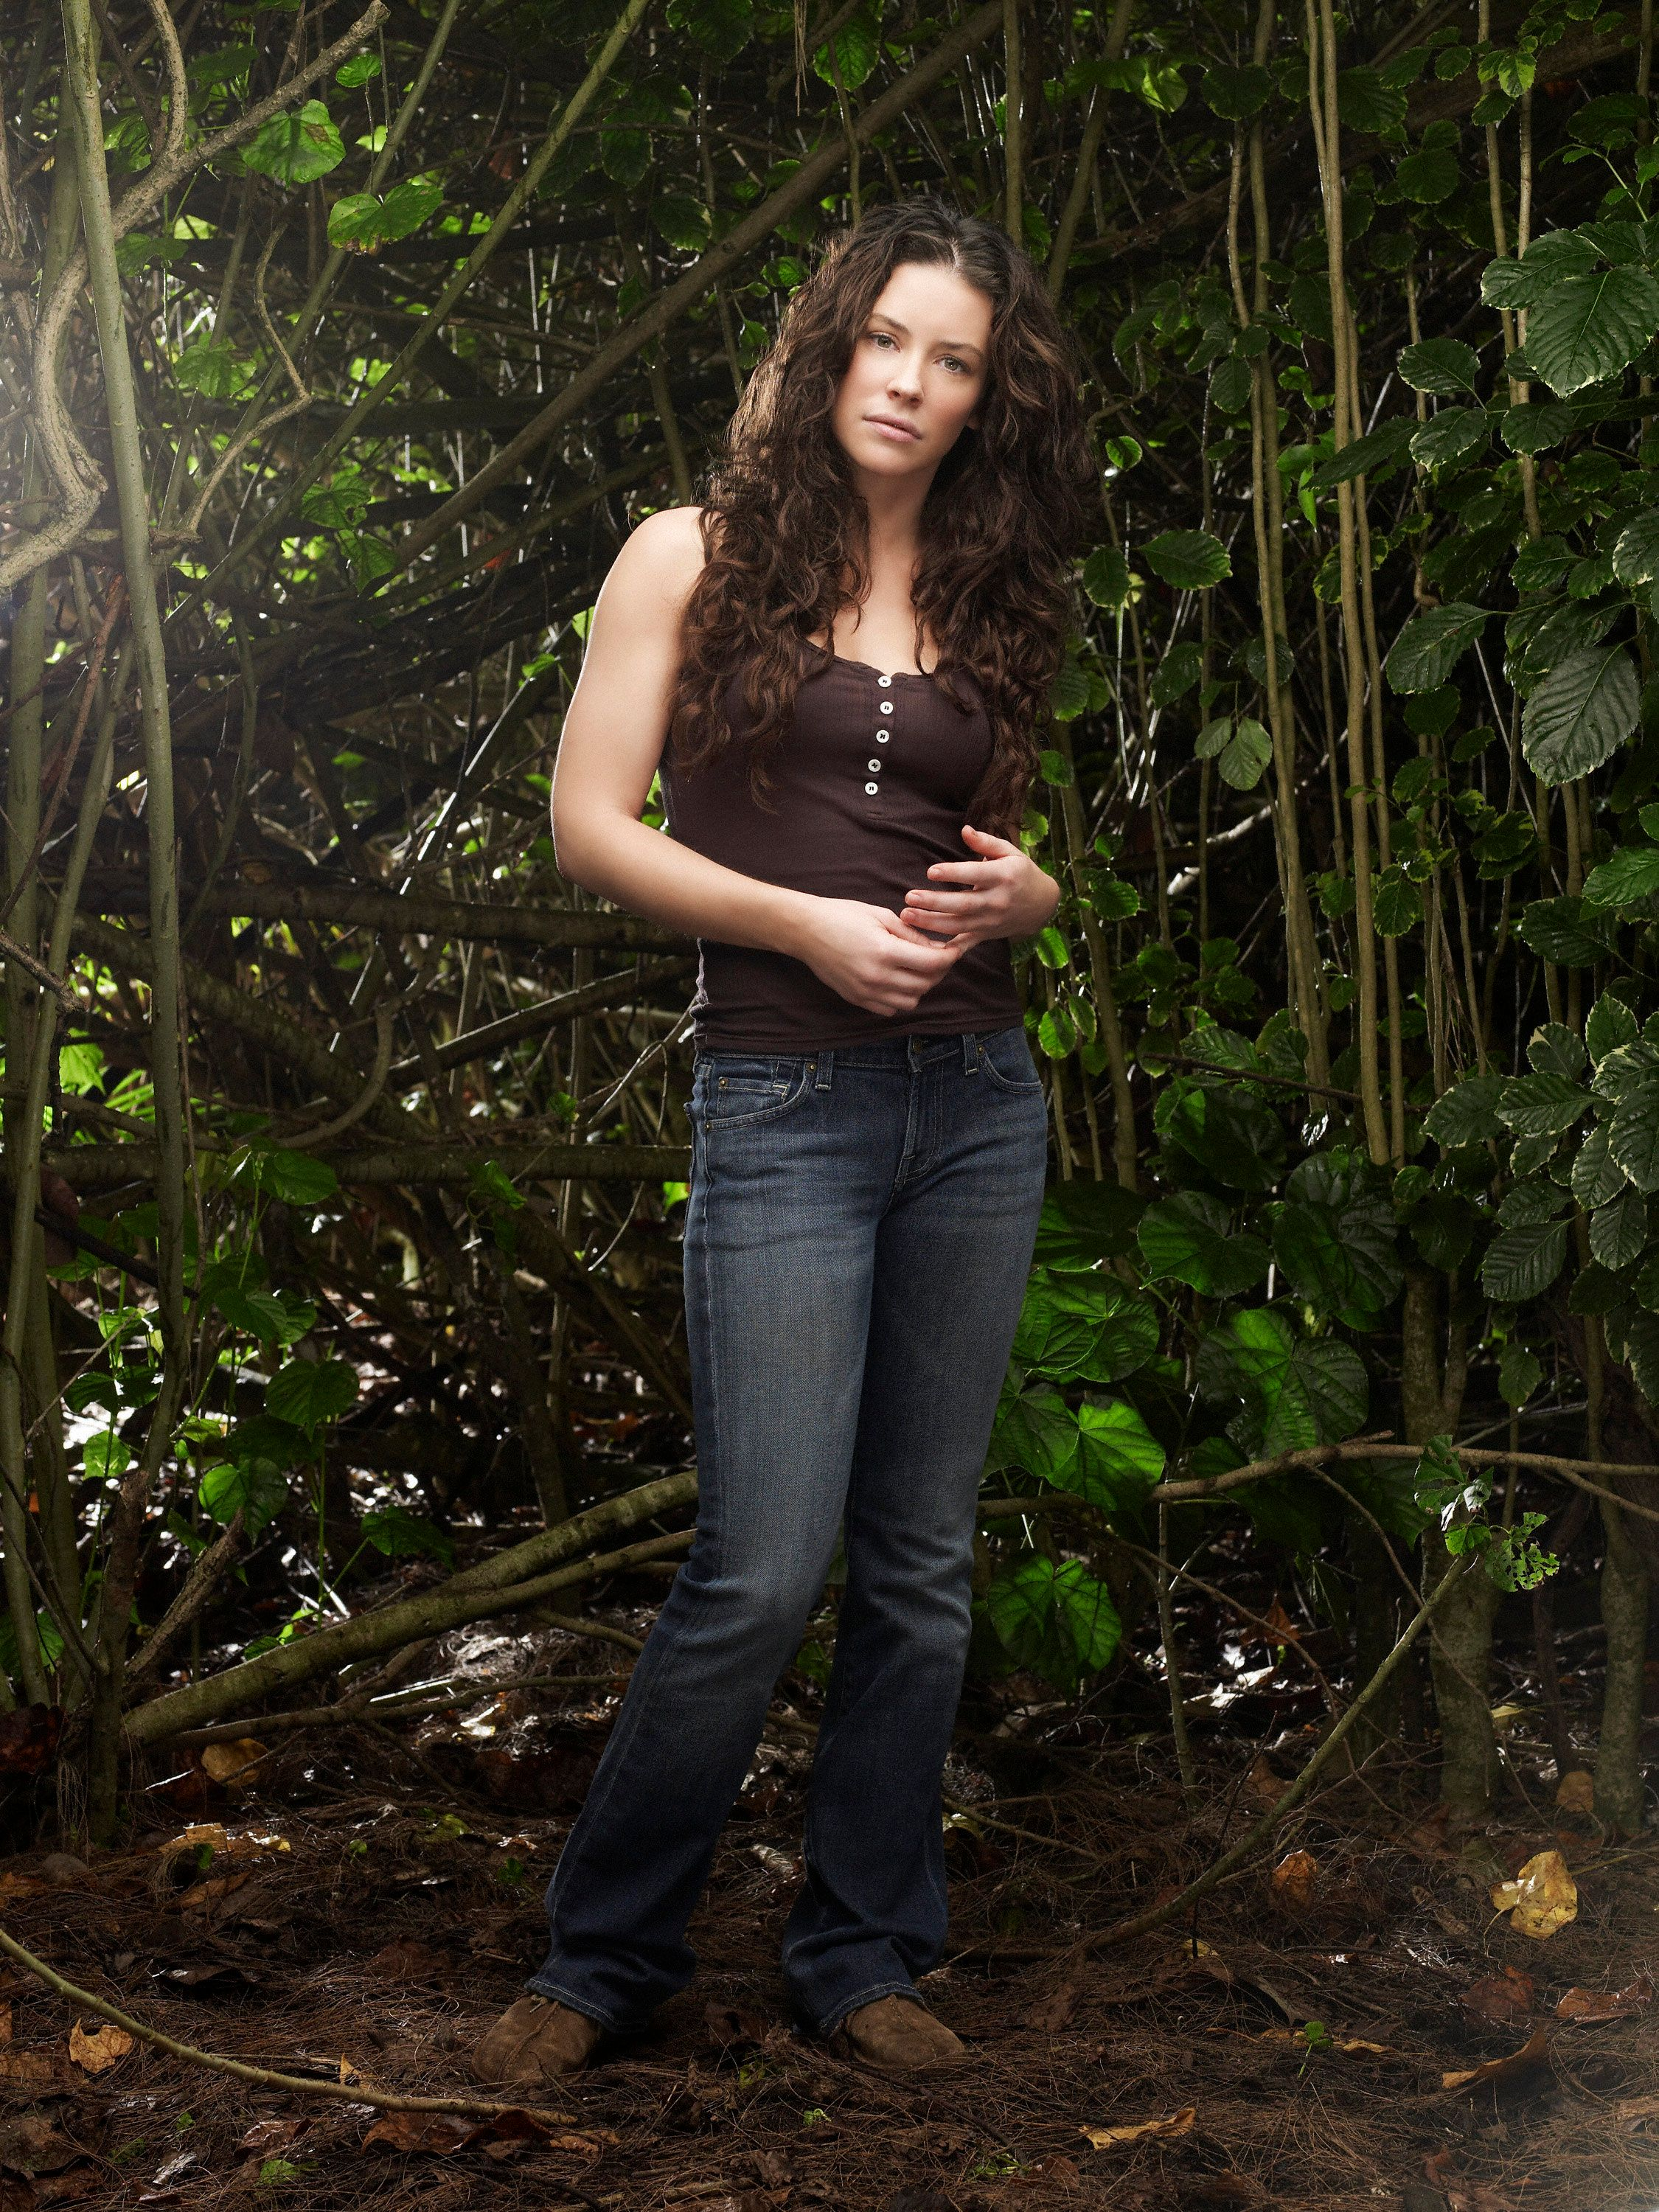 UNITED STATES - NOVEMBER 19:  LOST - ABC's 'Lost' stars Evangeline Lilly as Kate.  (Photo by Art Streiber/ABC via Getty Images)